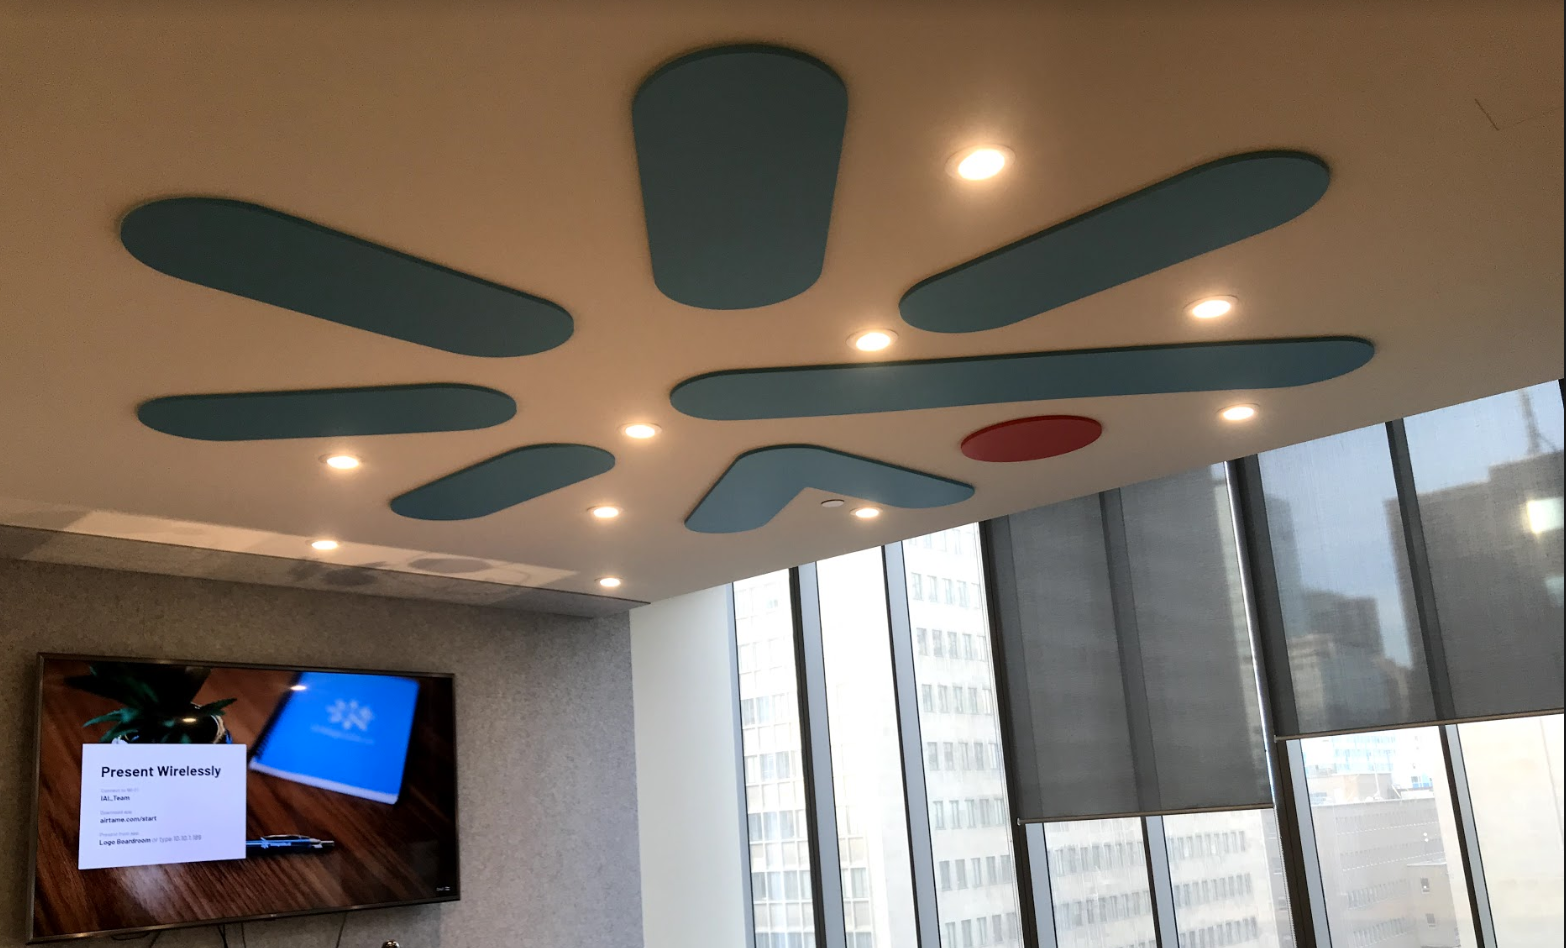 (Boardroom at Integrate.ai) A common place for client meetings